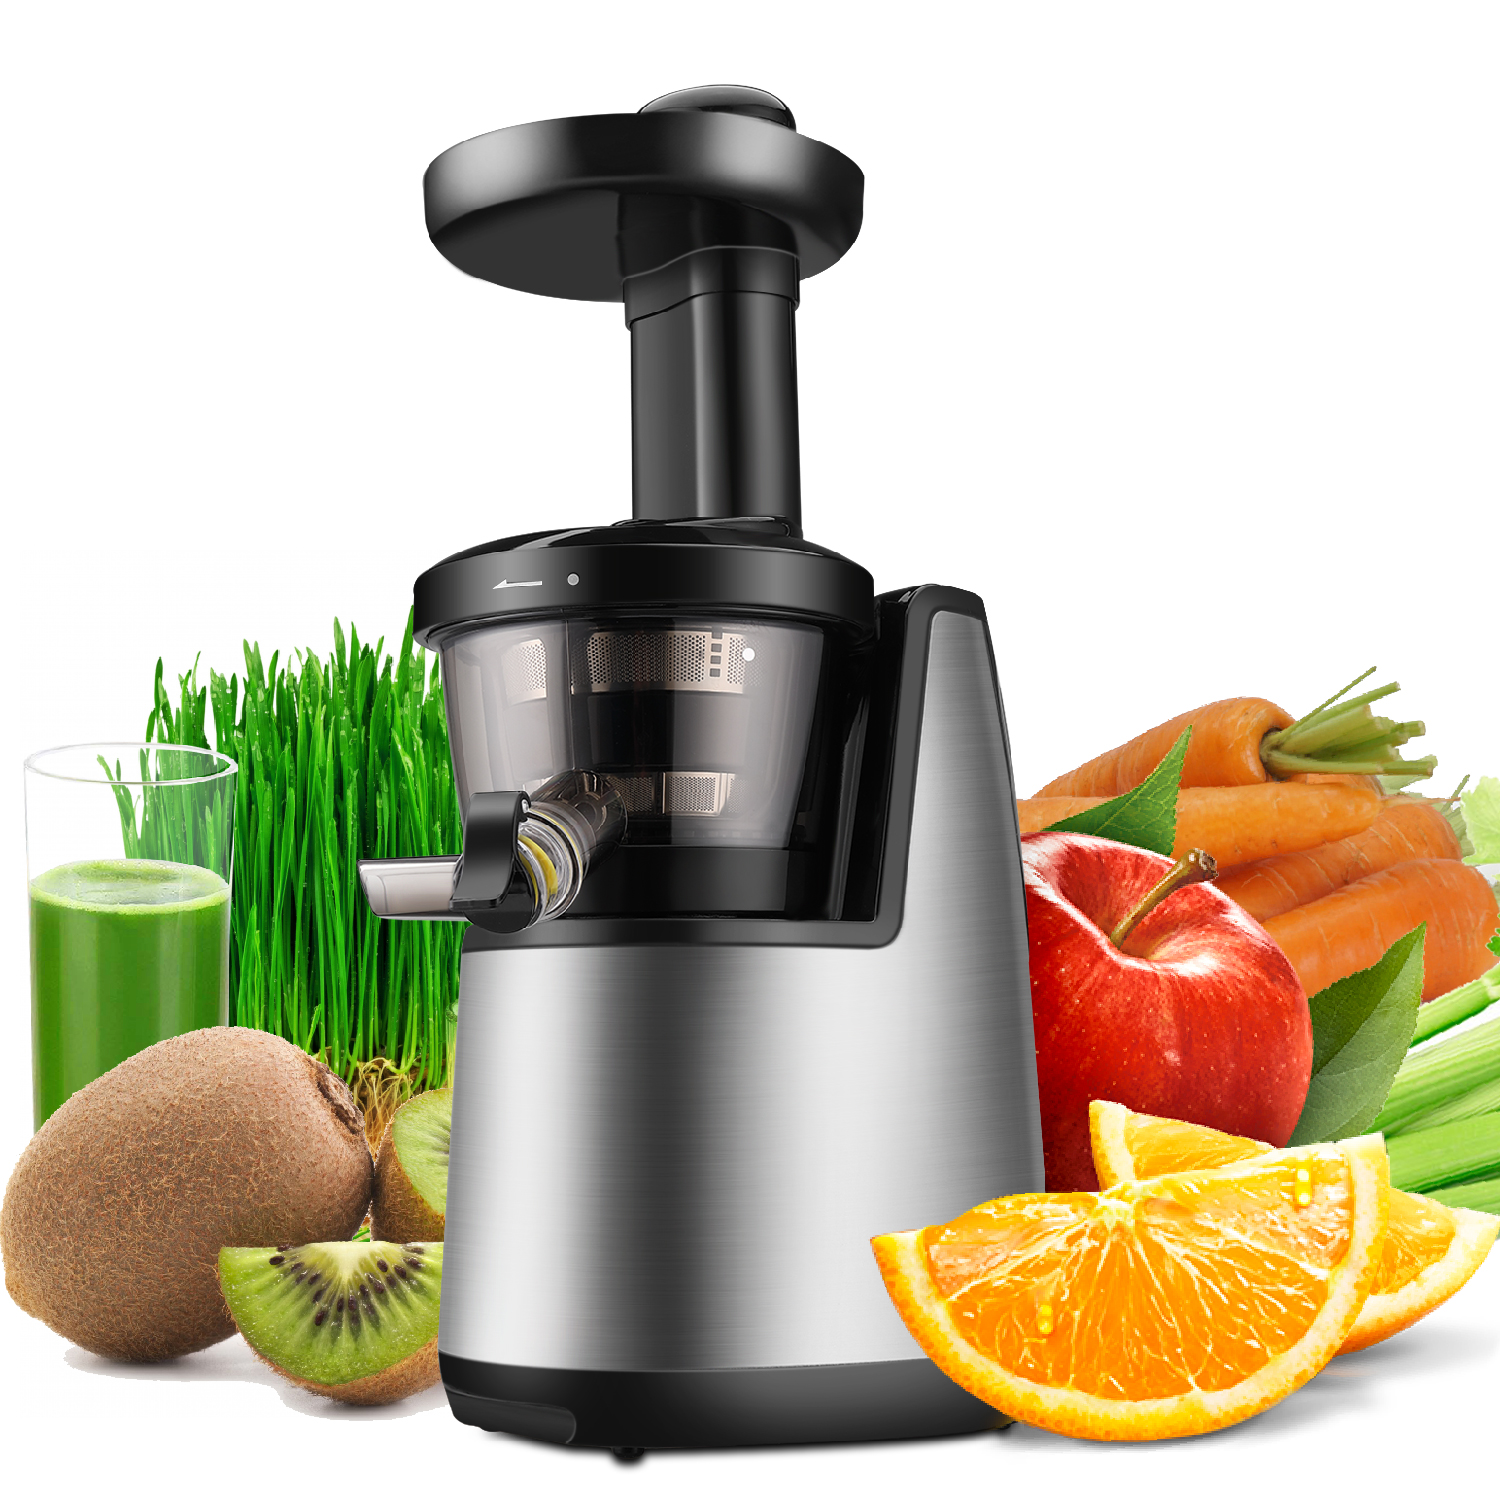 Details about Cold Press Juicer Machine Masticating Slow Juice Extractor Maker Fruit Vegetable